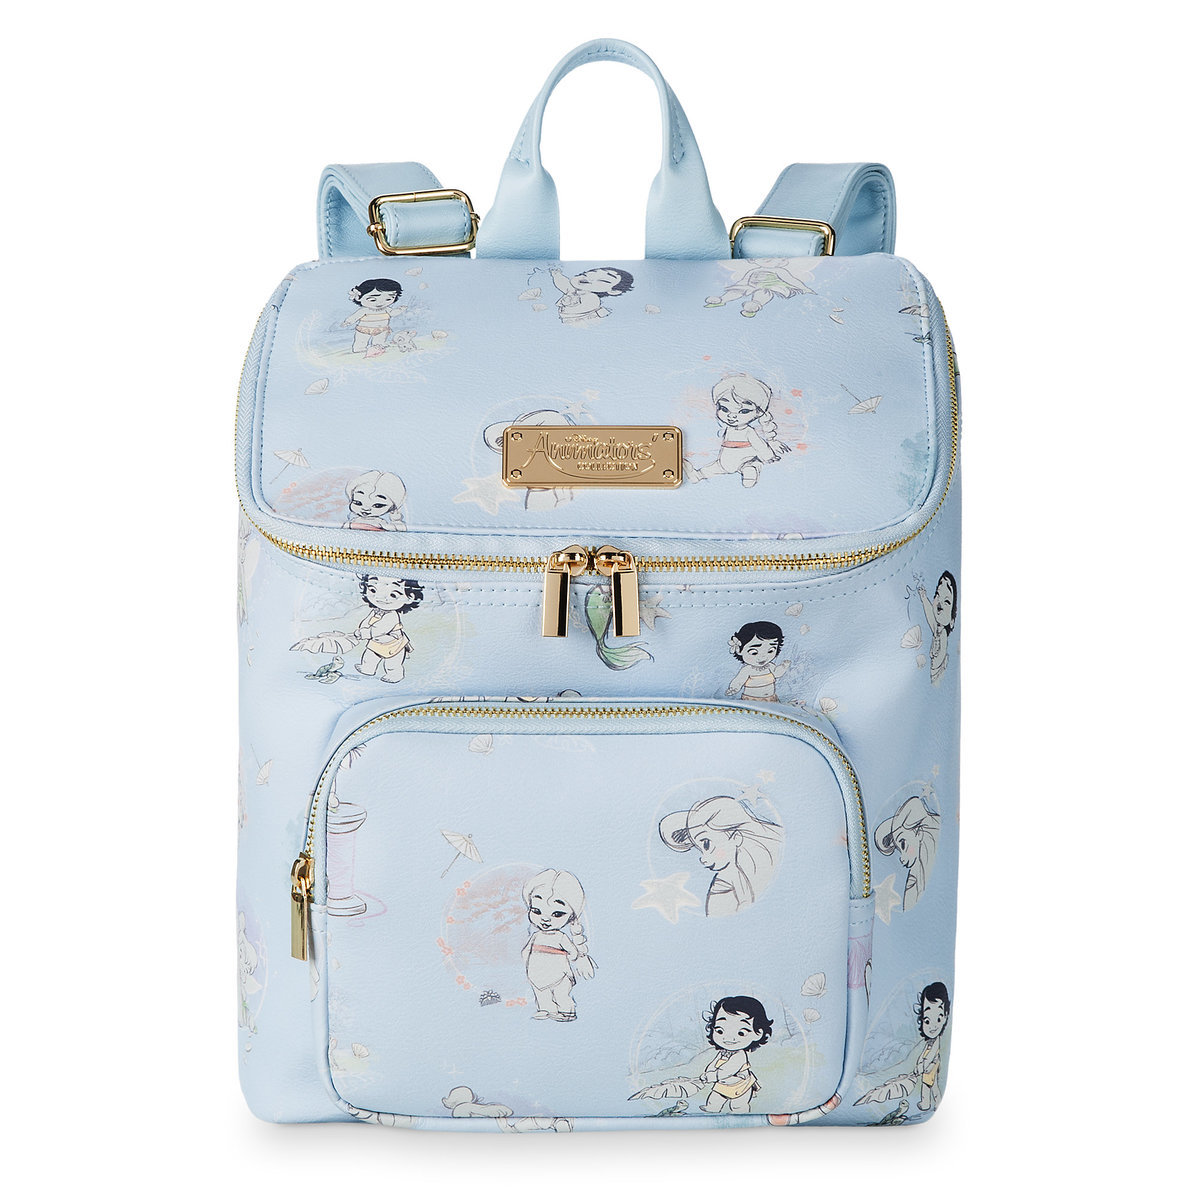 fb7abb93d5 Product Image of Disney Princess Disney Animators  Collection Backpack   1